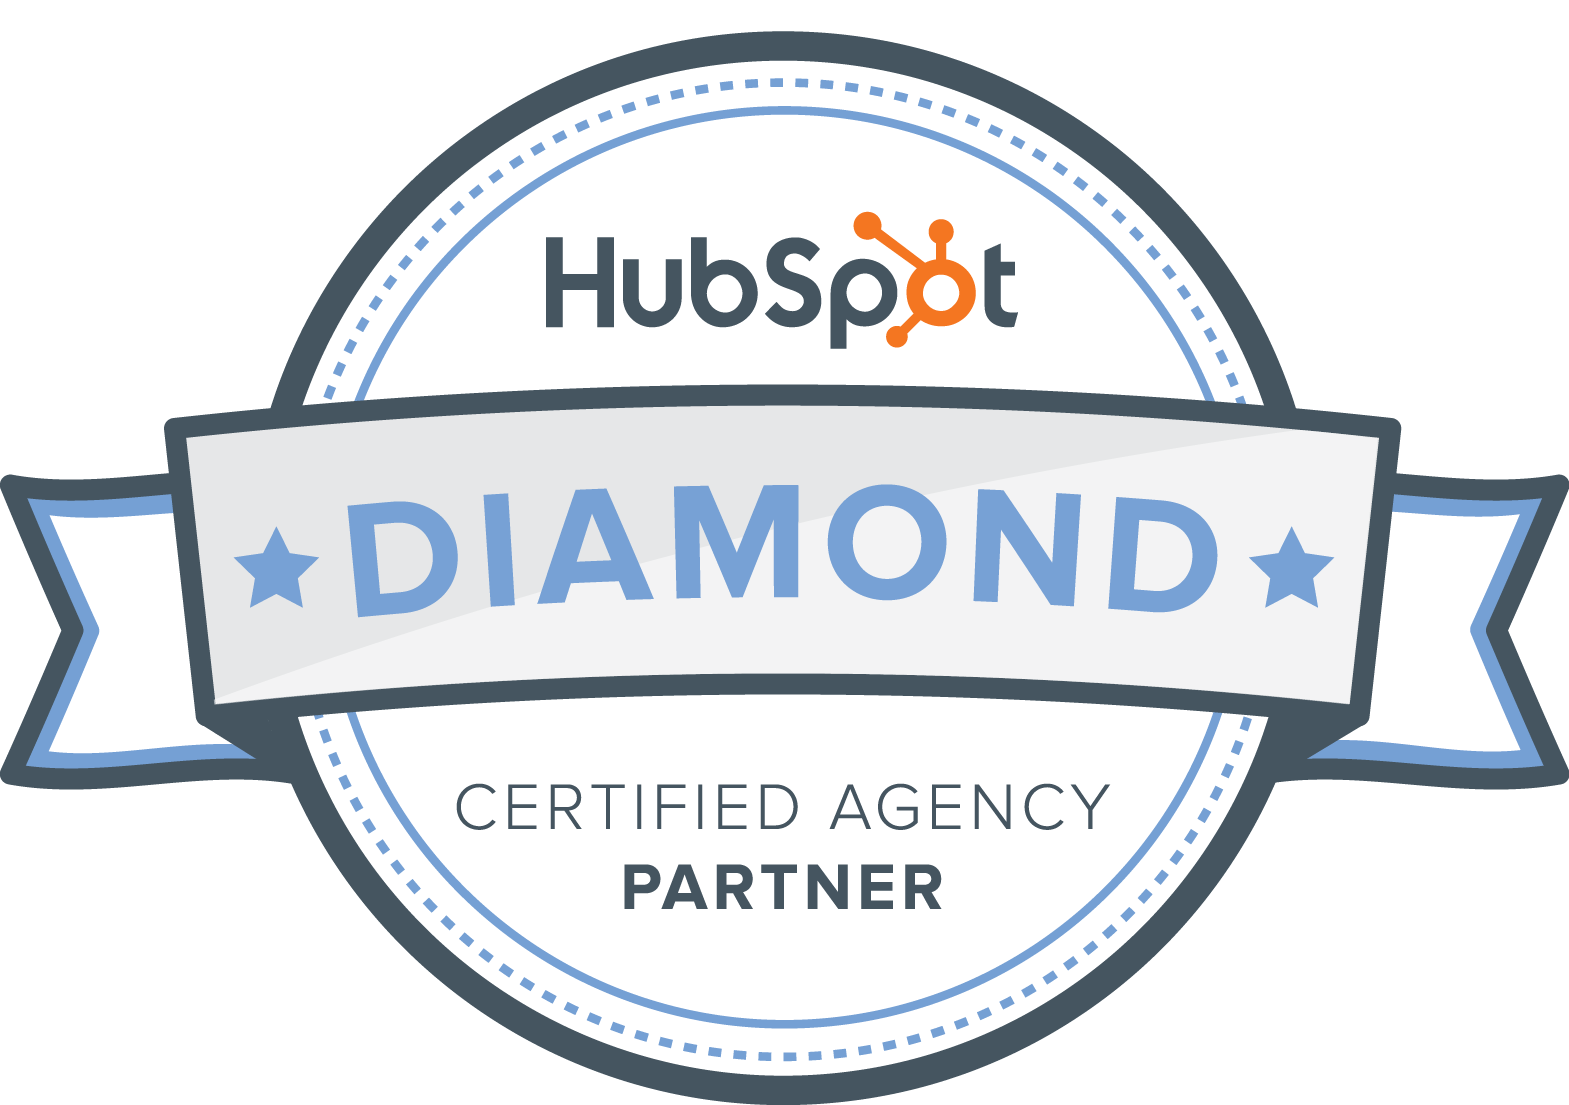 Diamond HubSpot partner badge ESM Inbound